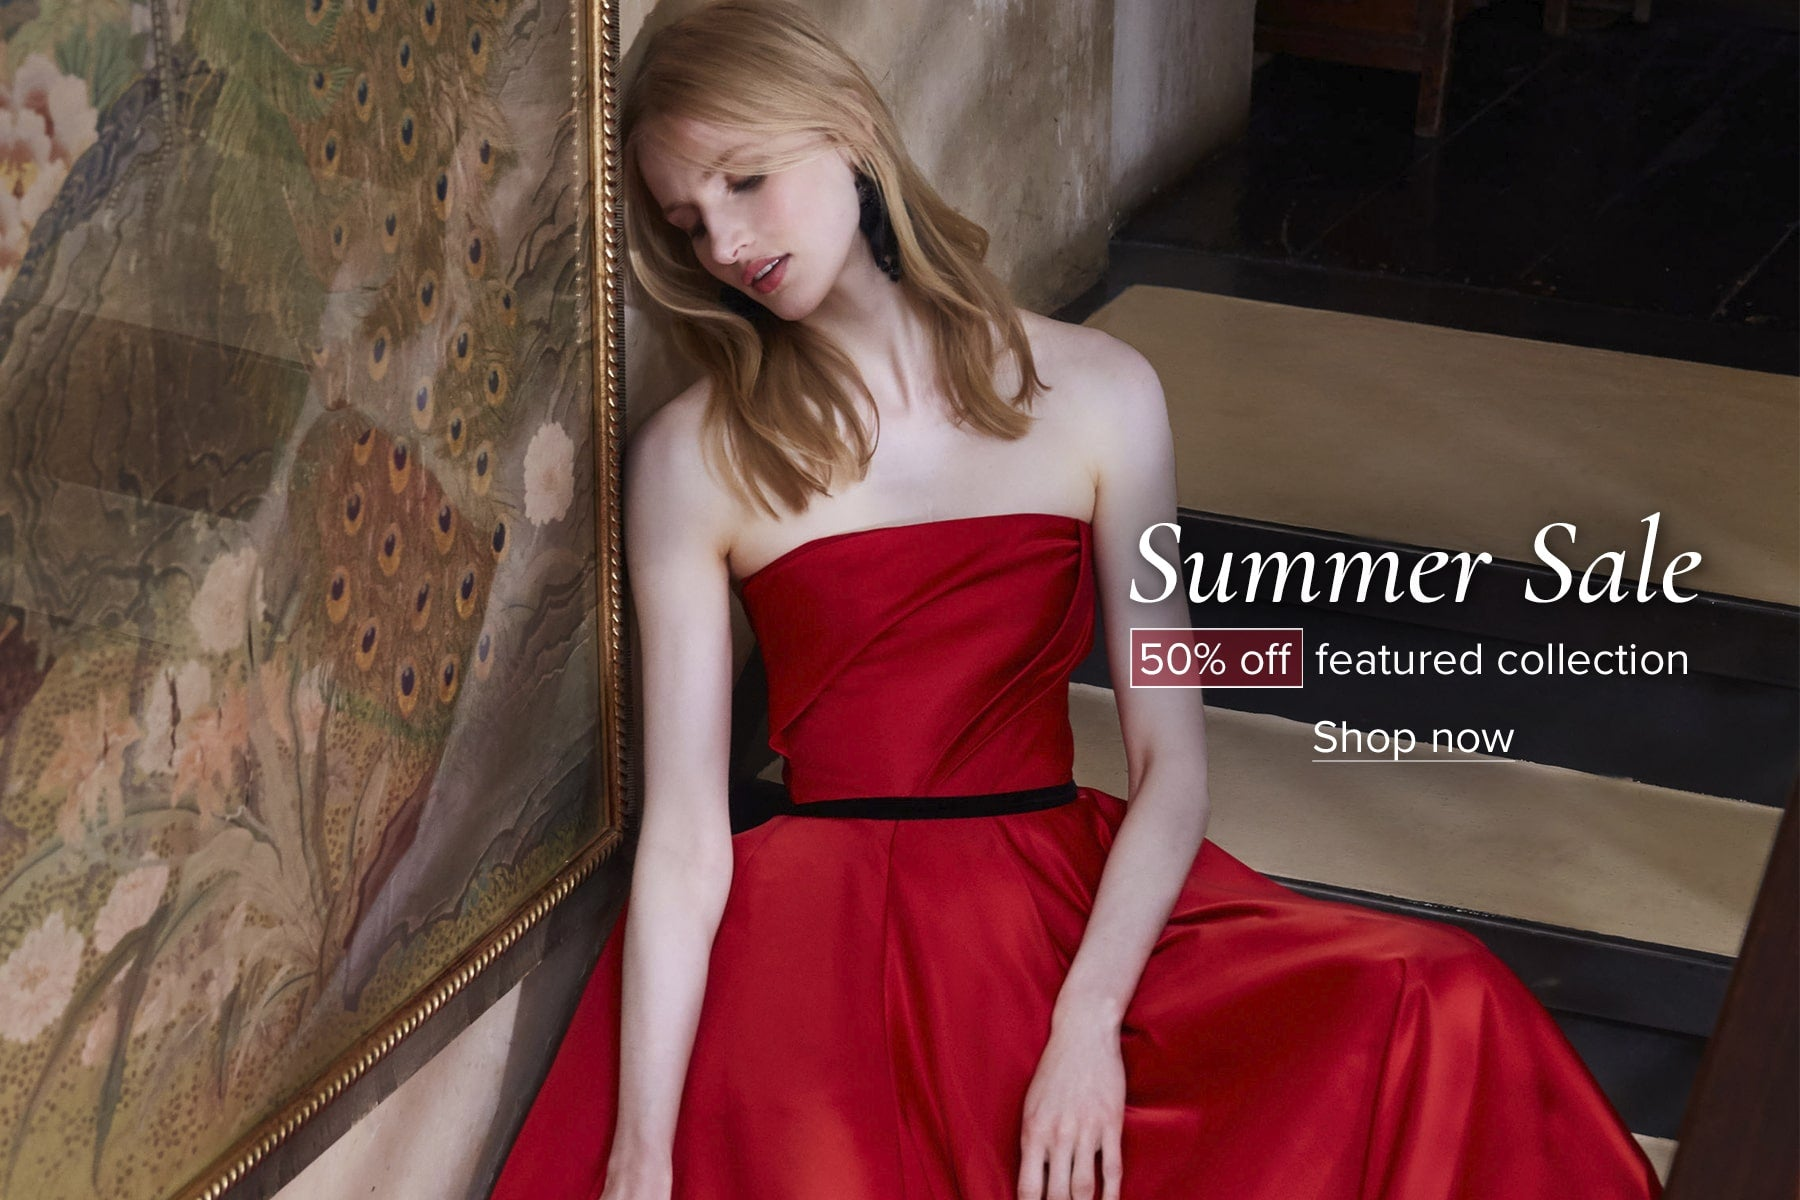 50% off featured collection in the Marchesa Summer Sale